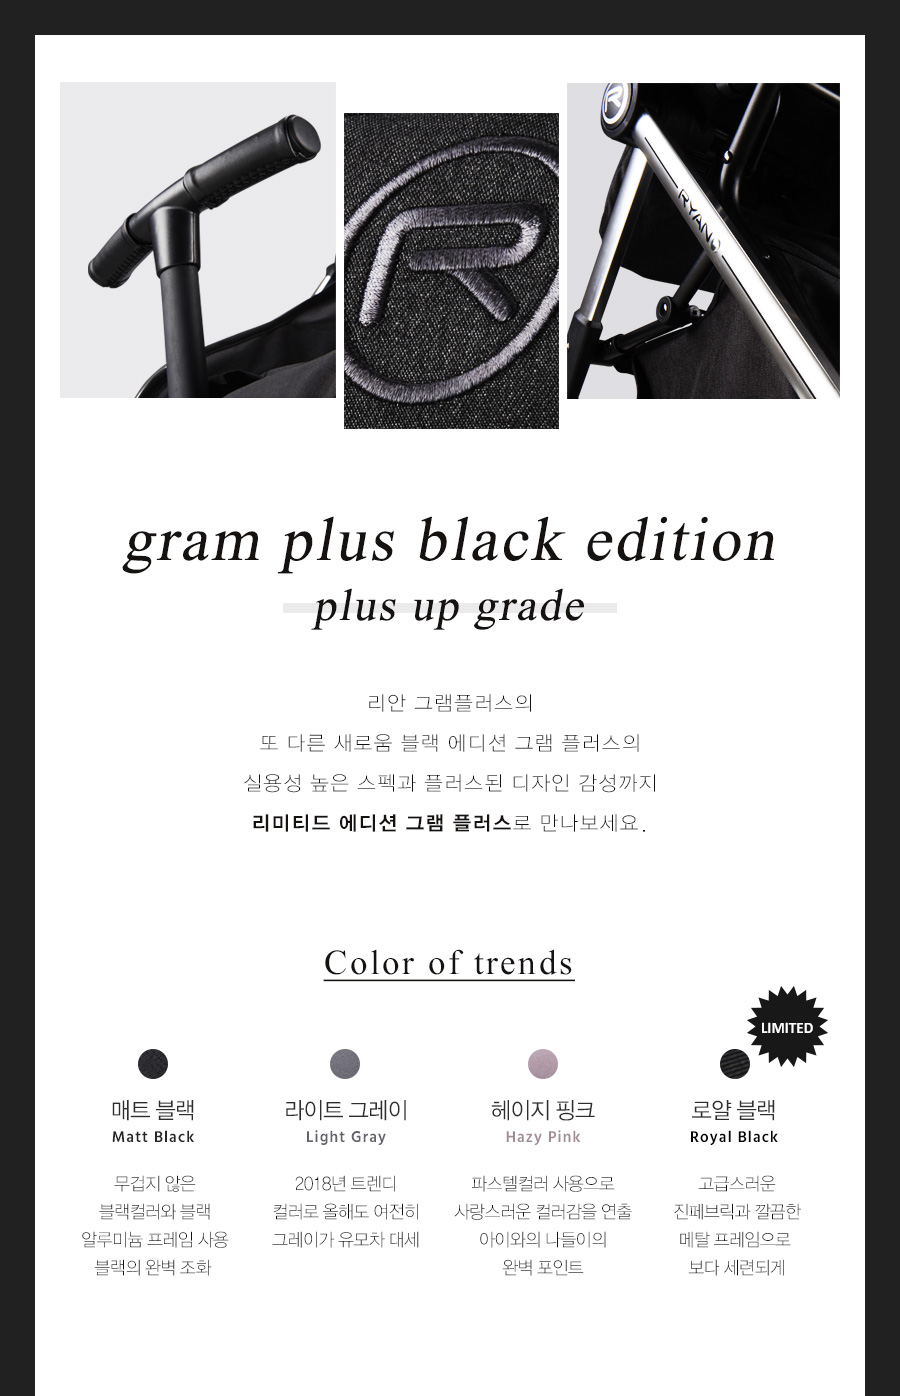 Ryan_gramplus black